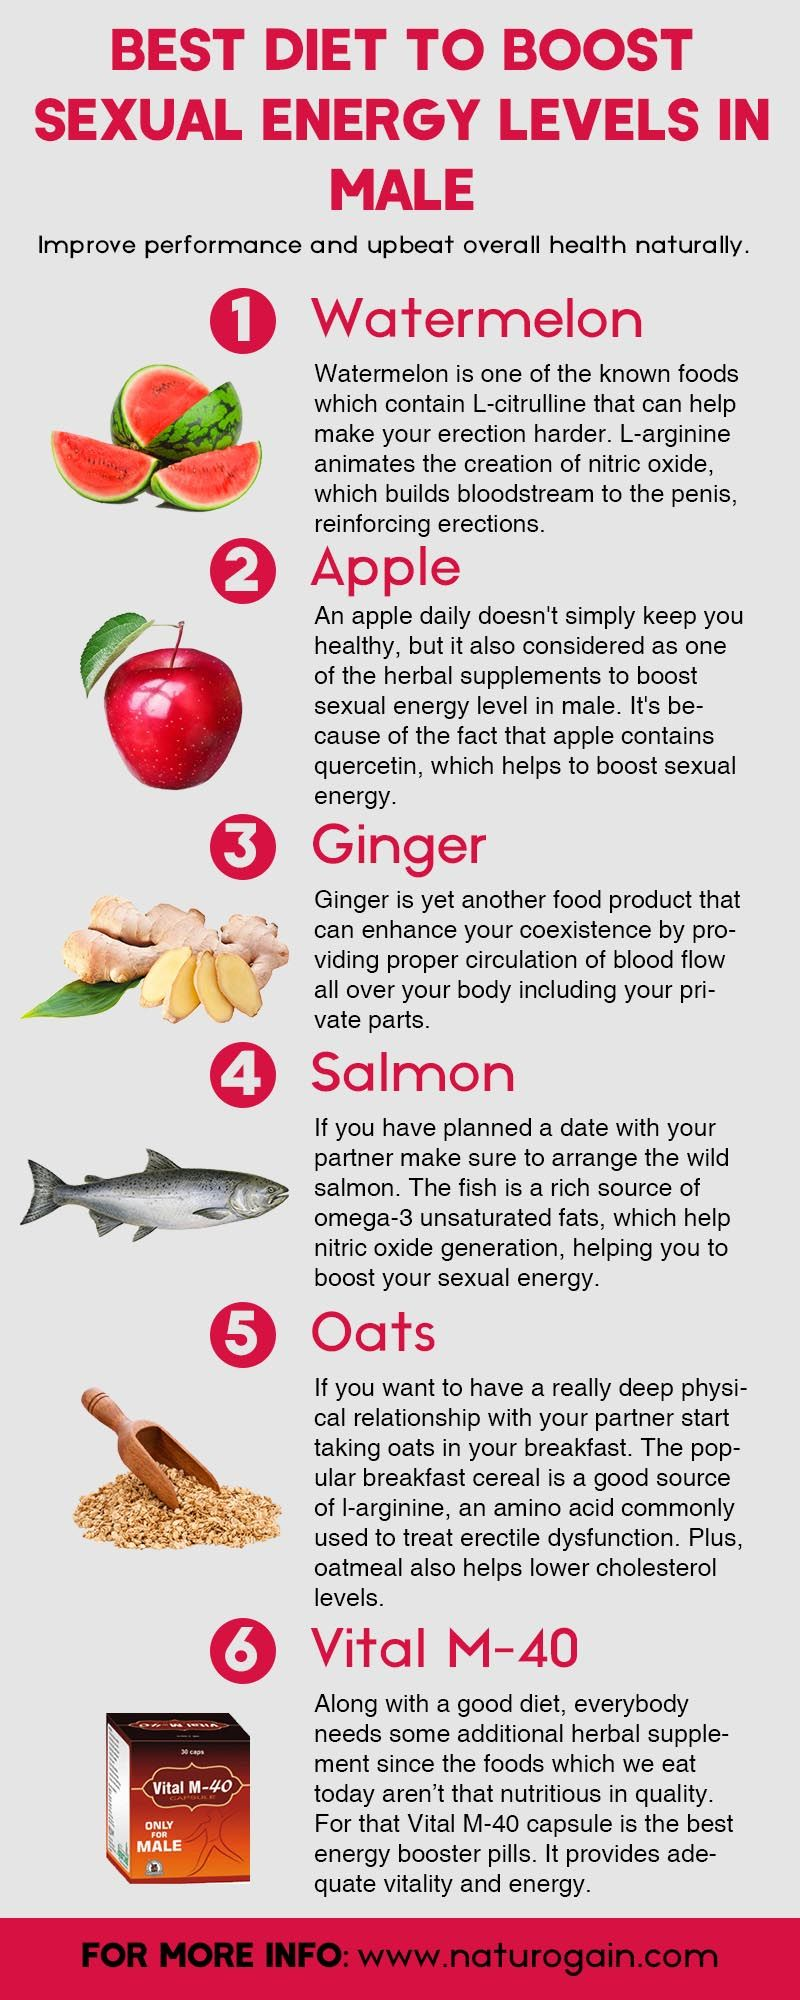 Best Diet to Boost Sexual Energy Levels in Male